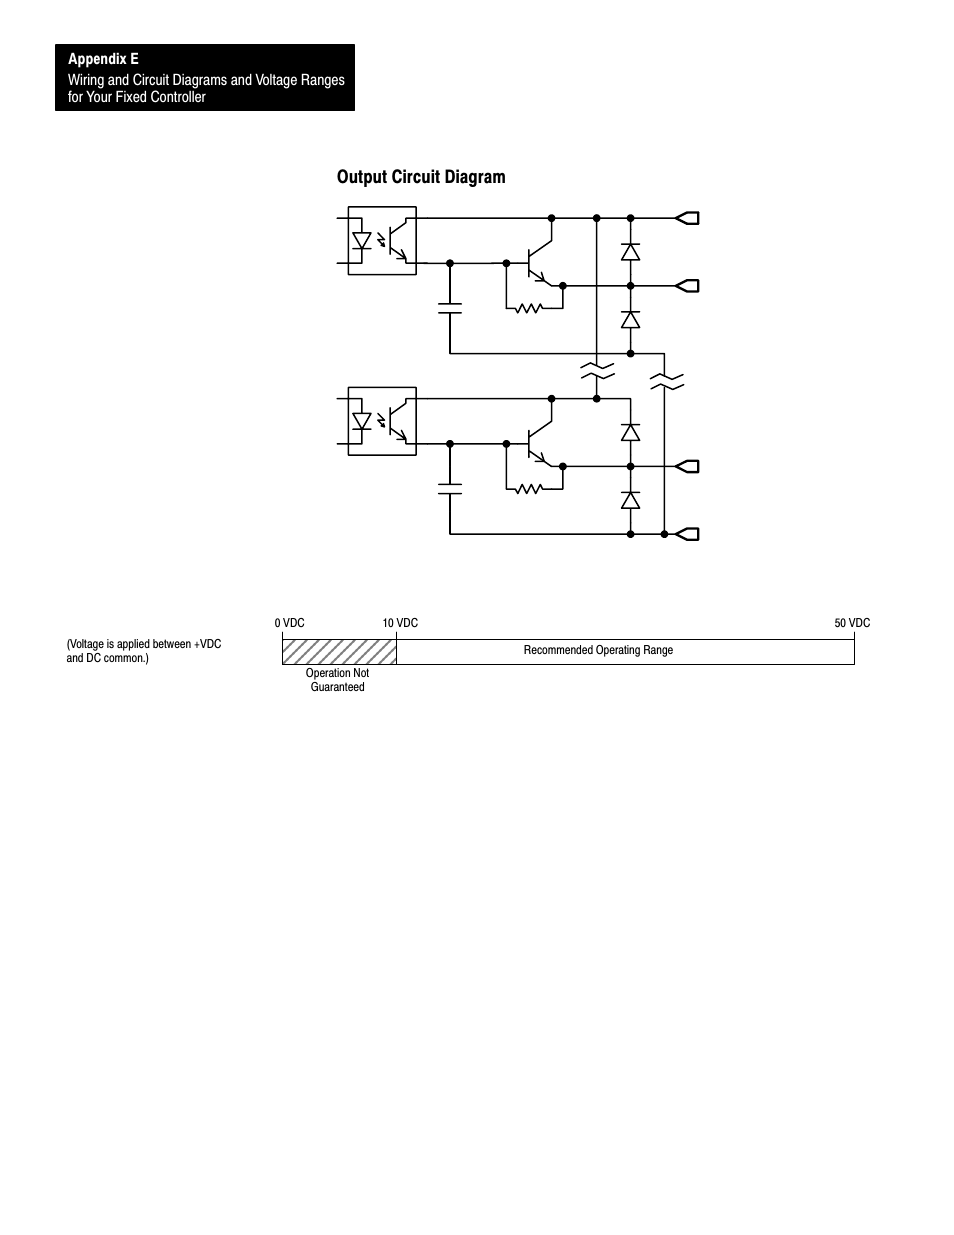 output circuit diagram, e-22, operating voltage range | rockwell automation  1747-l40 slc 500 fixed hardware style user manual | page 165 / 223